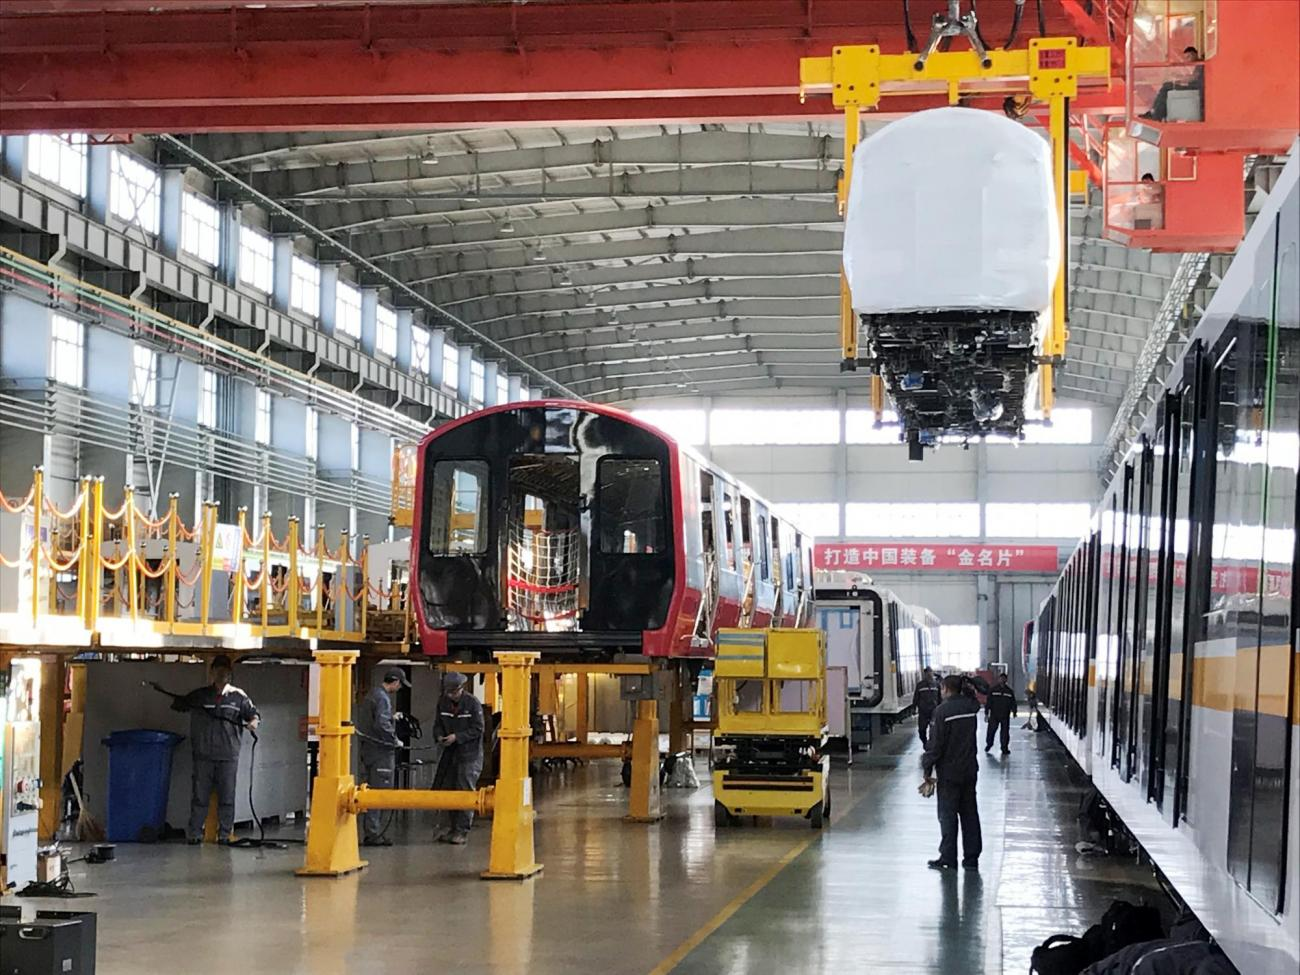 Red Line pilot car being outfitted, while a wrapped Orange Line production shell is being loaded for shipment from in Changchun, China to Springfield, MA